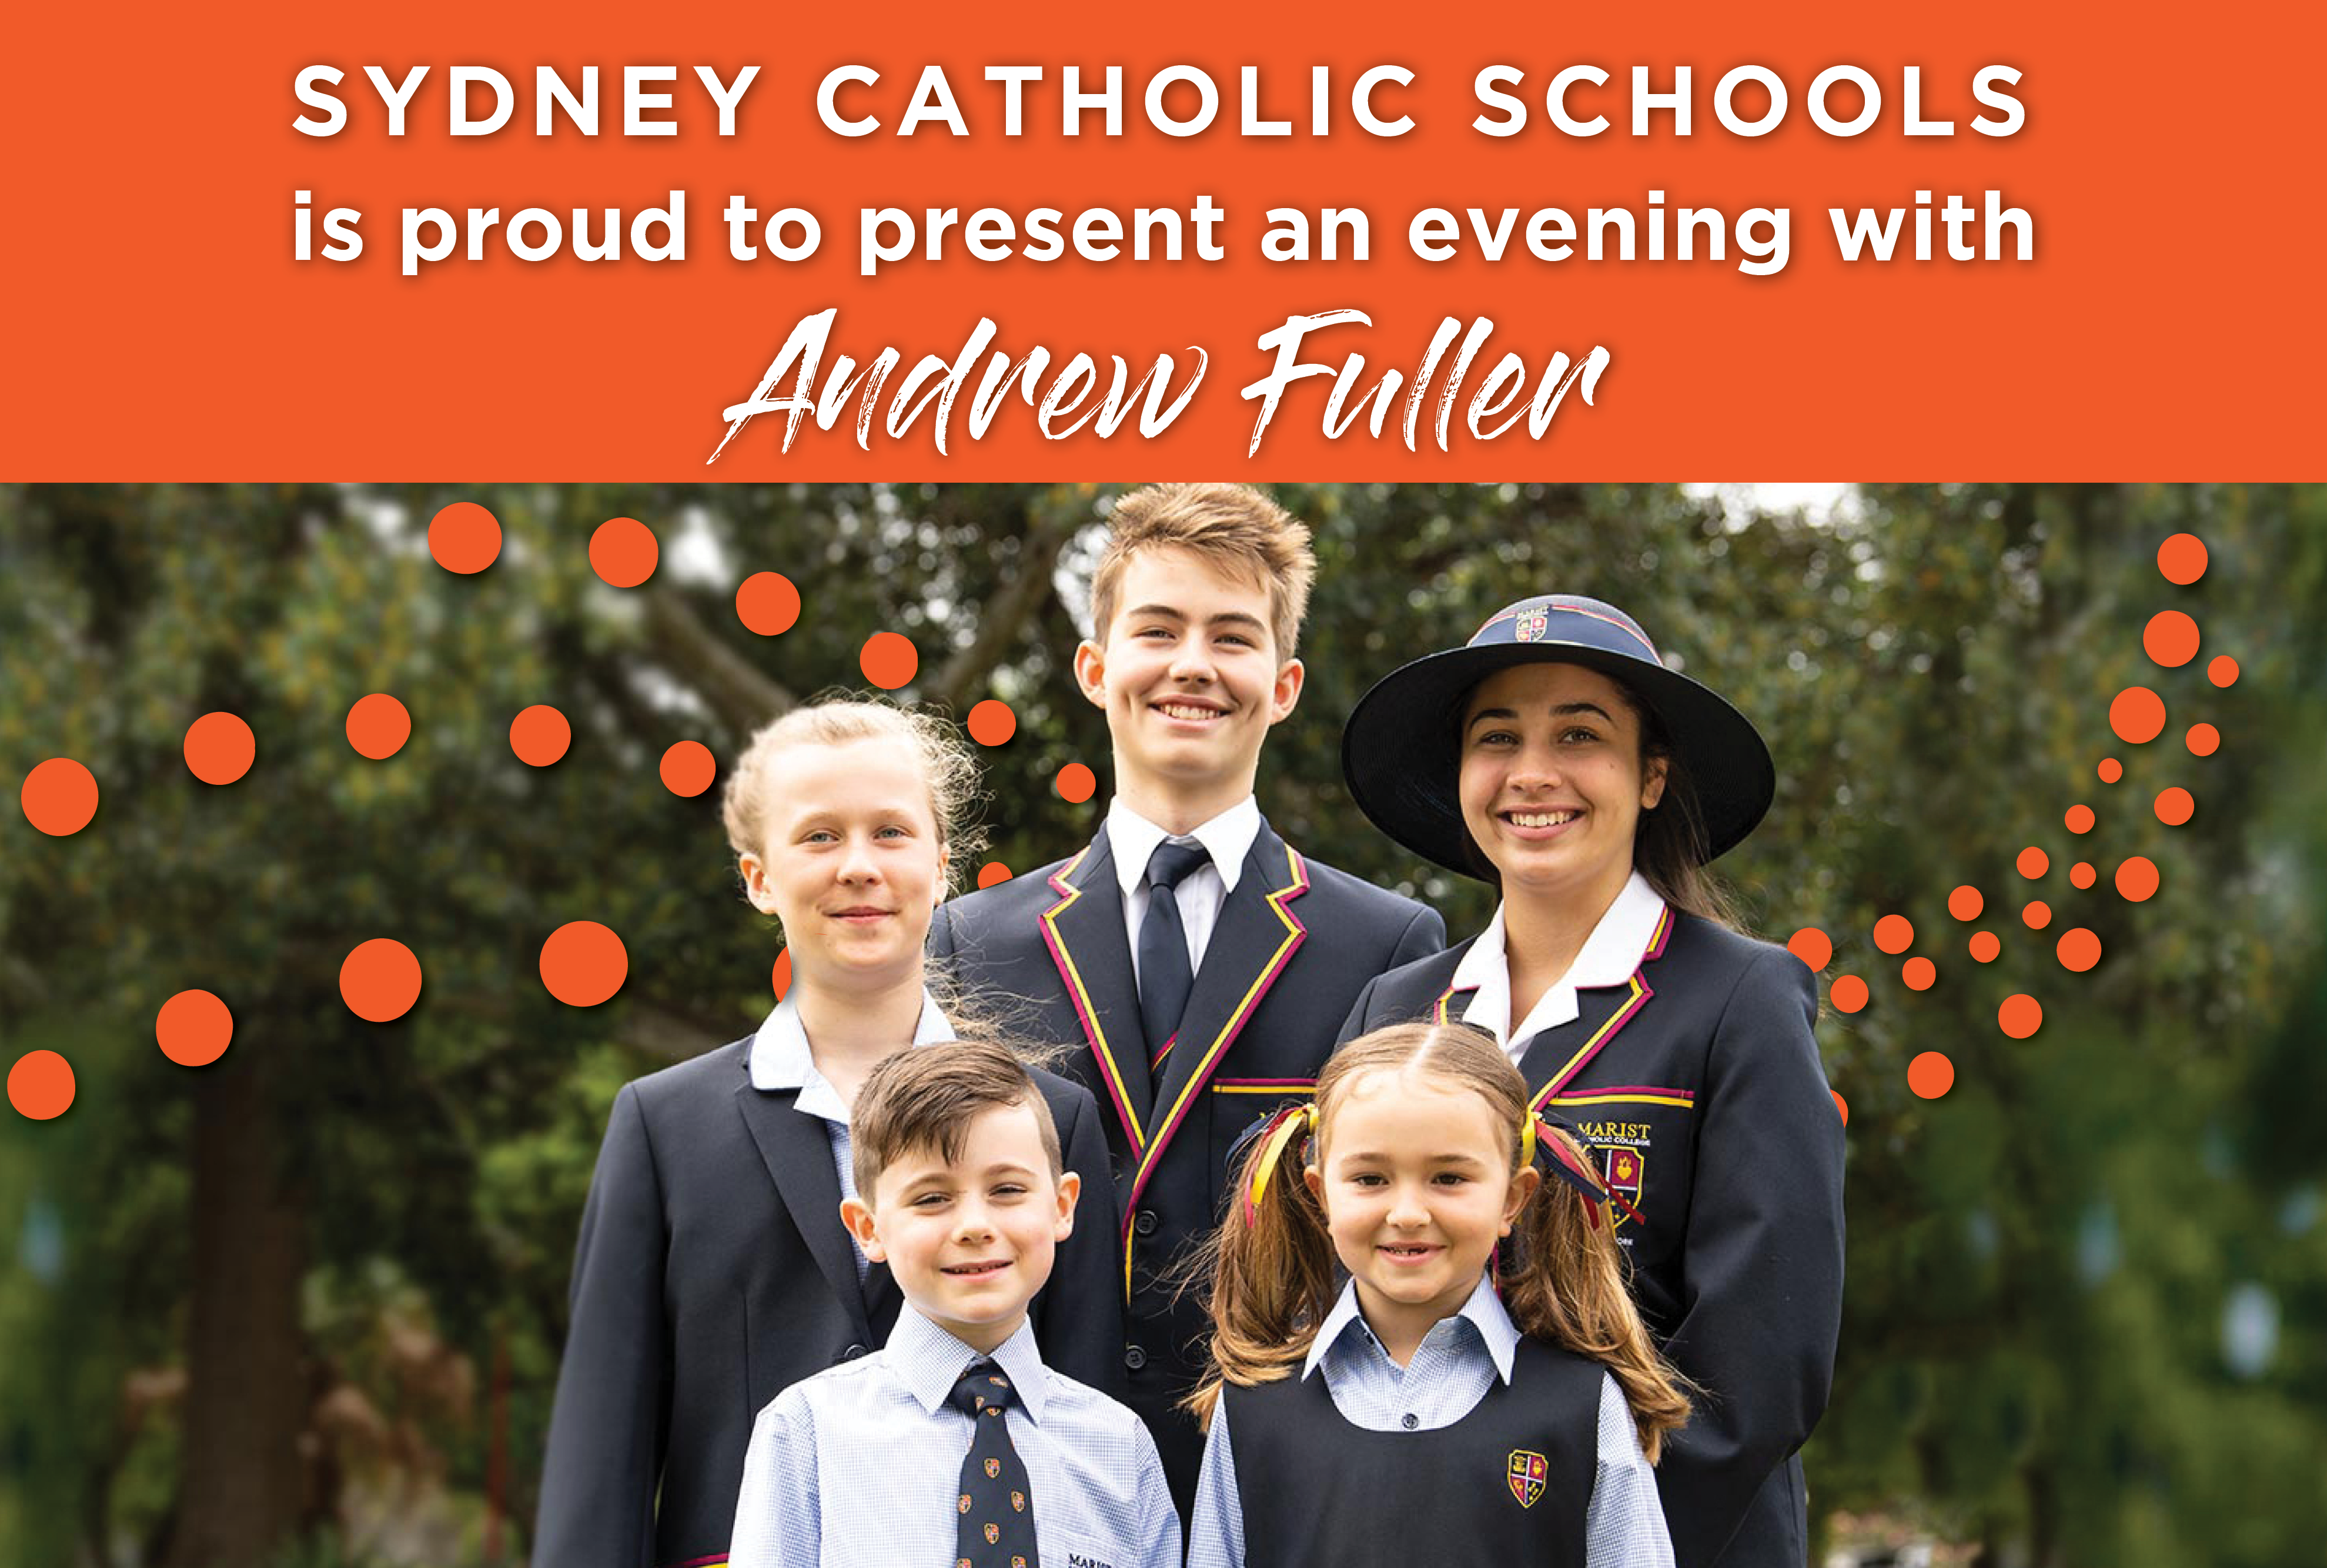 Sydney Catholic Schools is proud to present an evening with Andrew Fuller